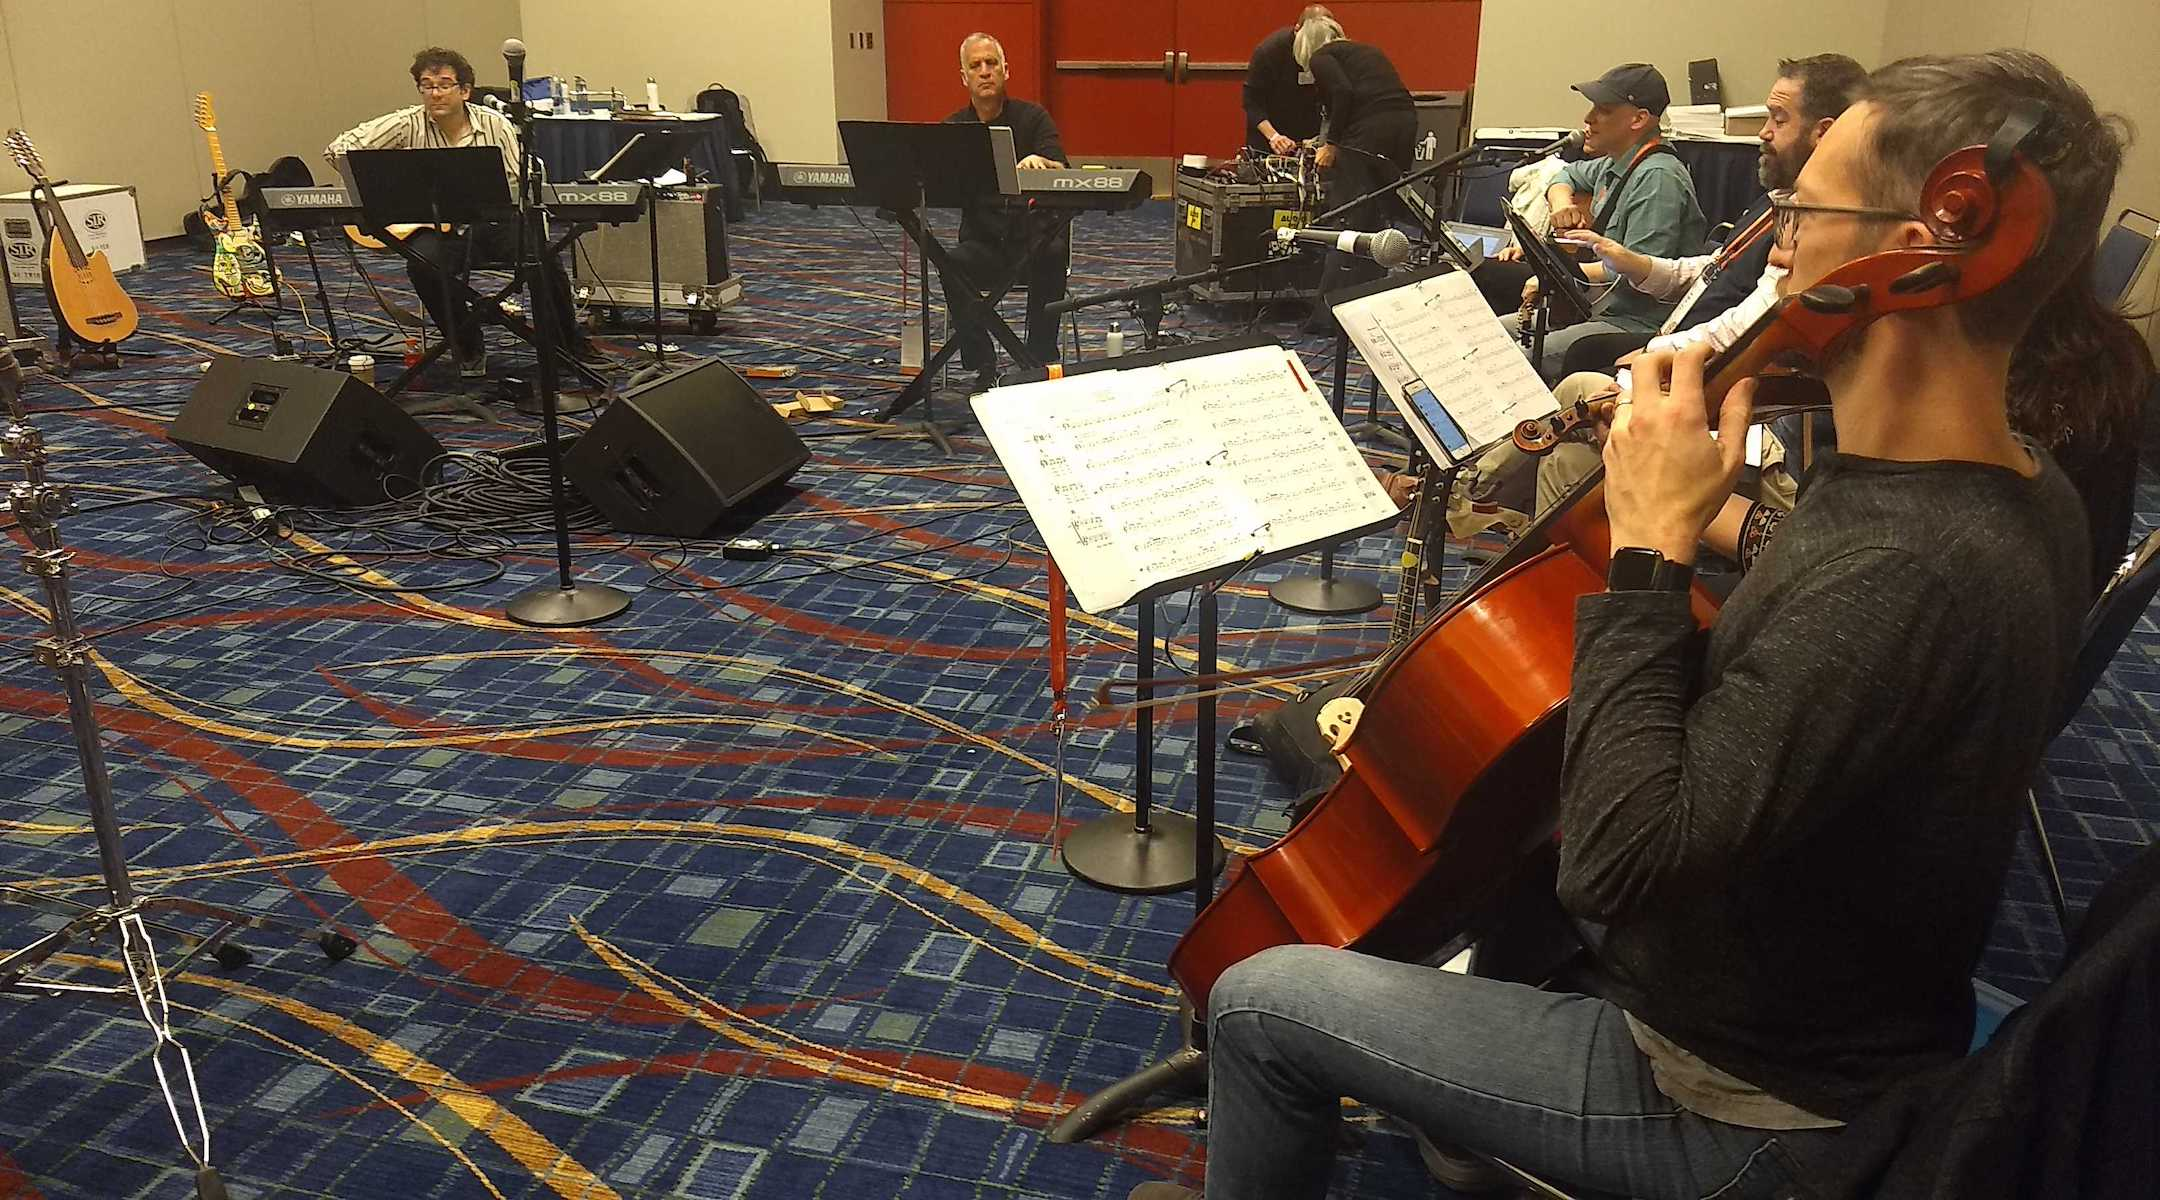 Members of the Reform Biennial Friday night service band practice on Thursday, Dec. 12 in Chicago. Josh Nelson, the biennial's artistic director, is at left. (Ben Sales)